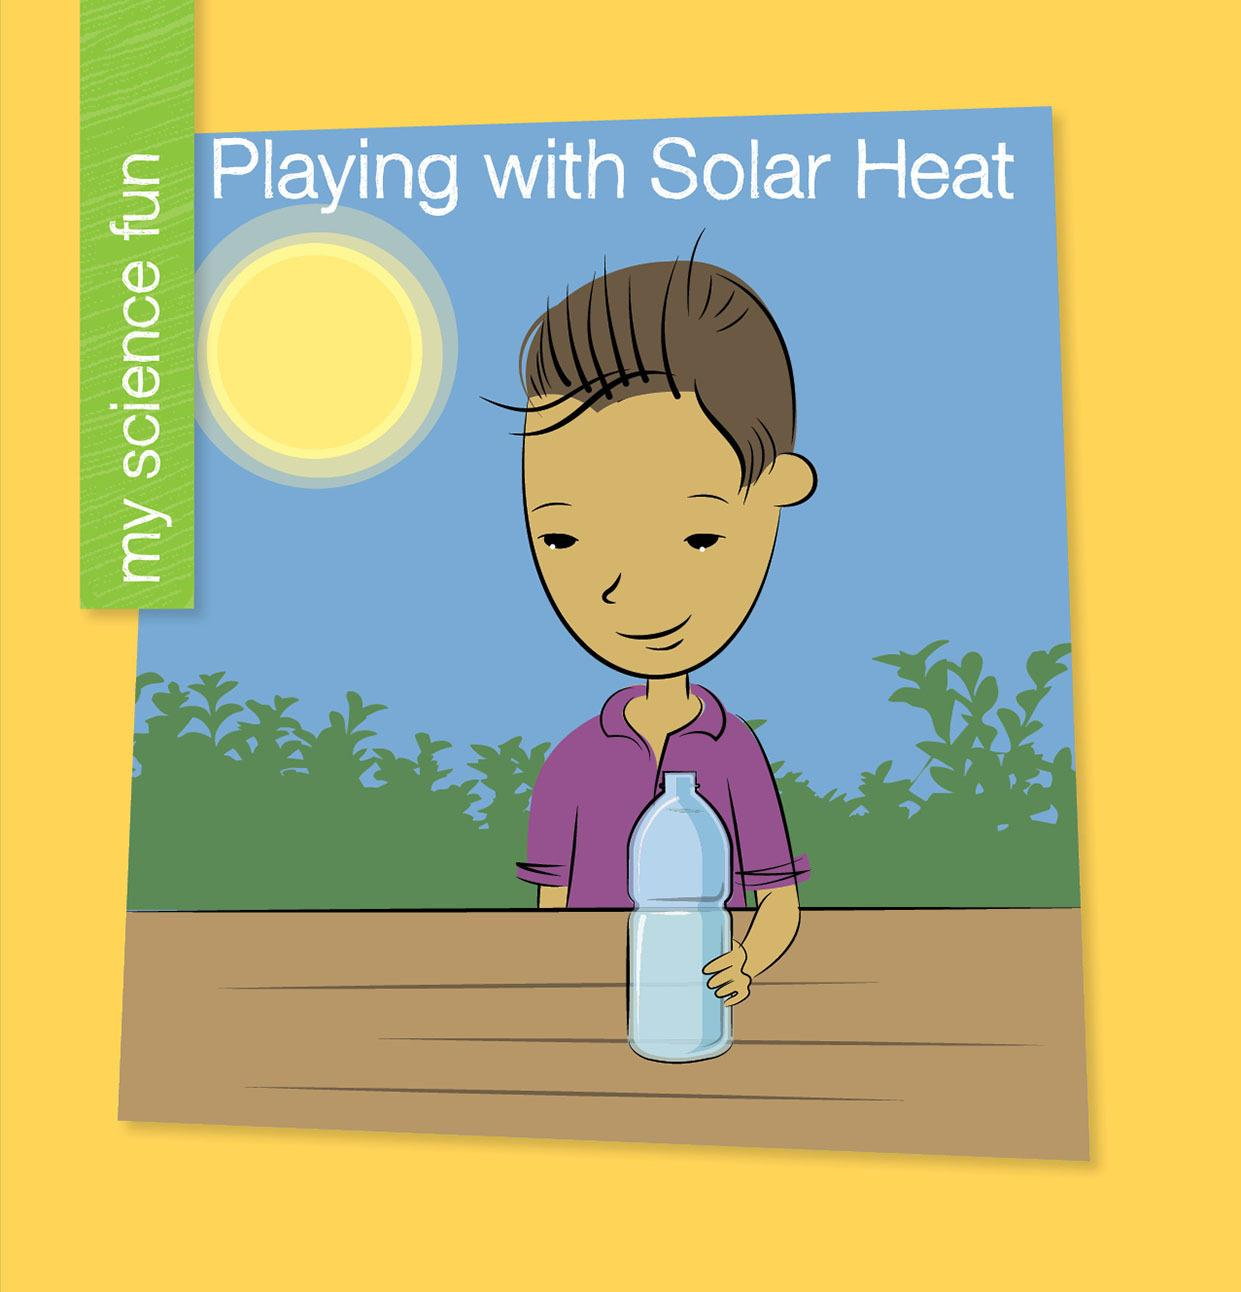 Playing with Solar Heat